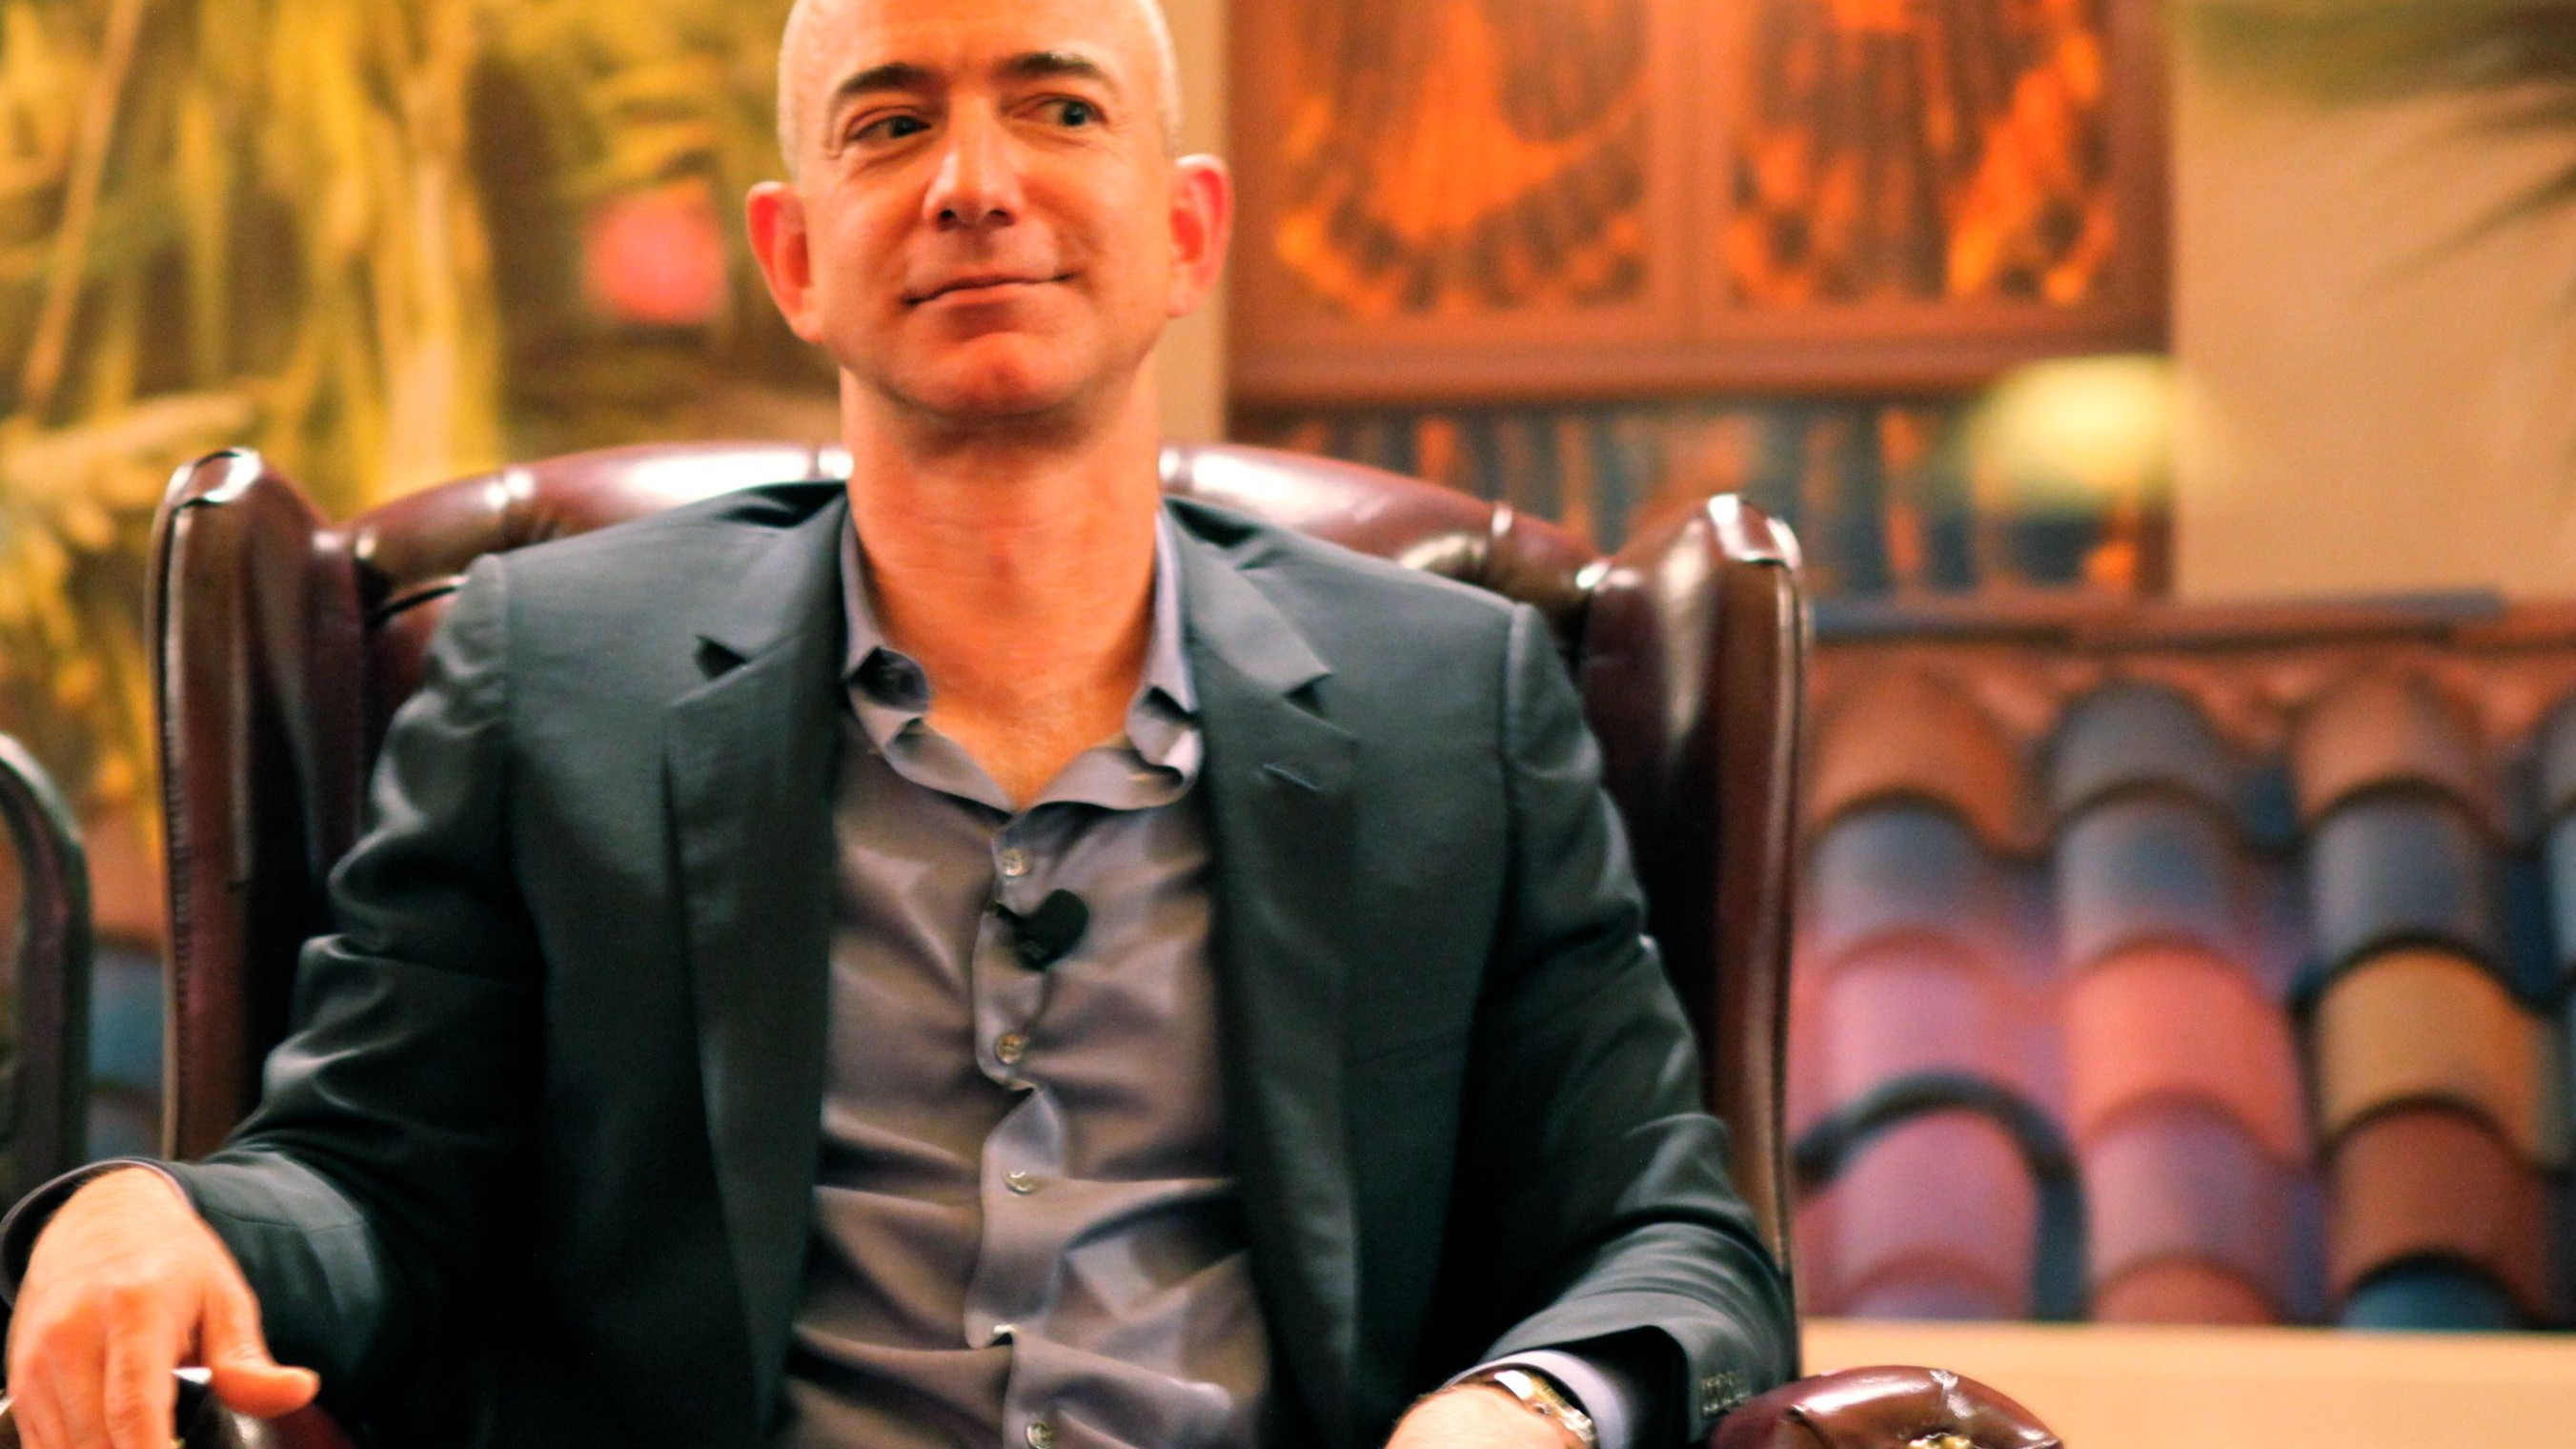 Jeff Bezos Riding High As Amazon Posts a Profit (Which Is Rare!)